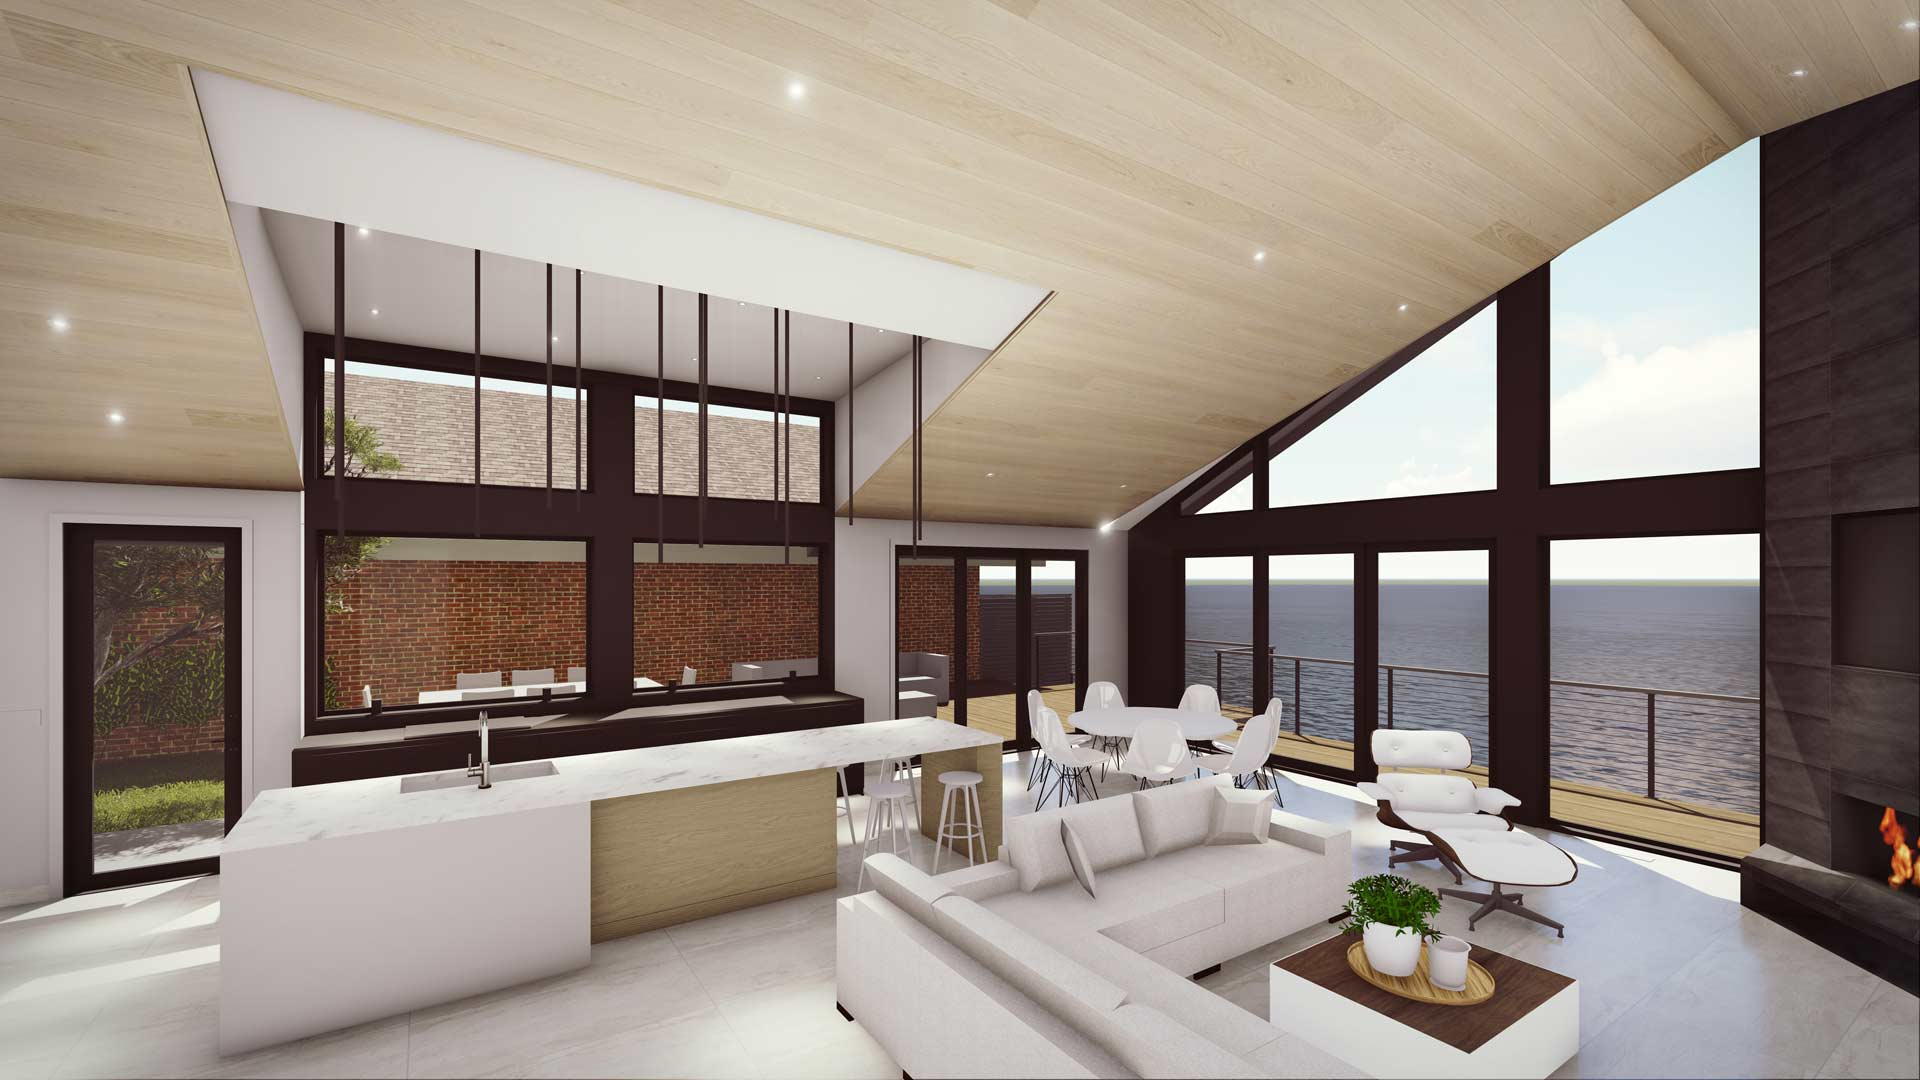 Interior Rendering of kitchen, dining, living room space overlooking lake - Modern Lakehouse Renovation - Clearwater